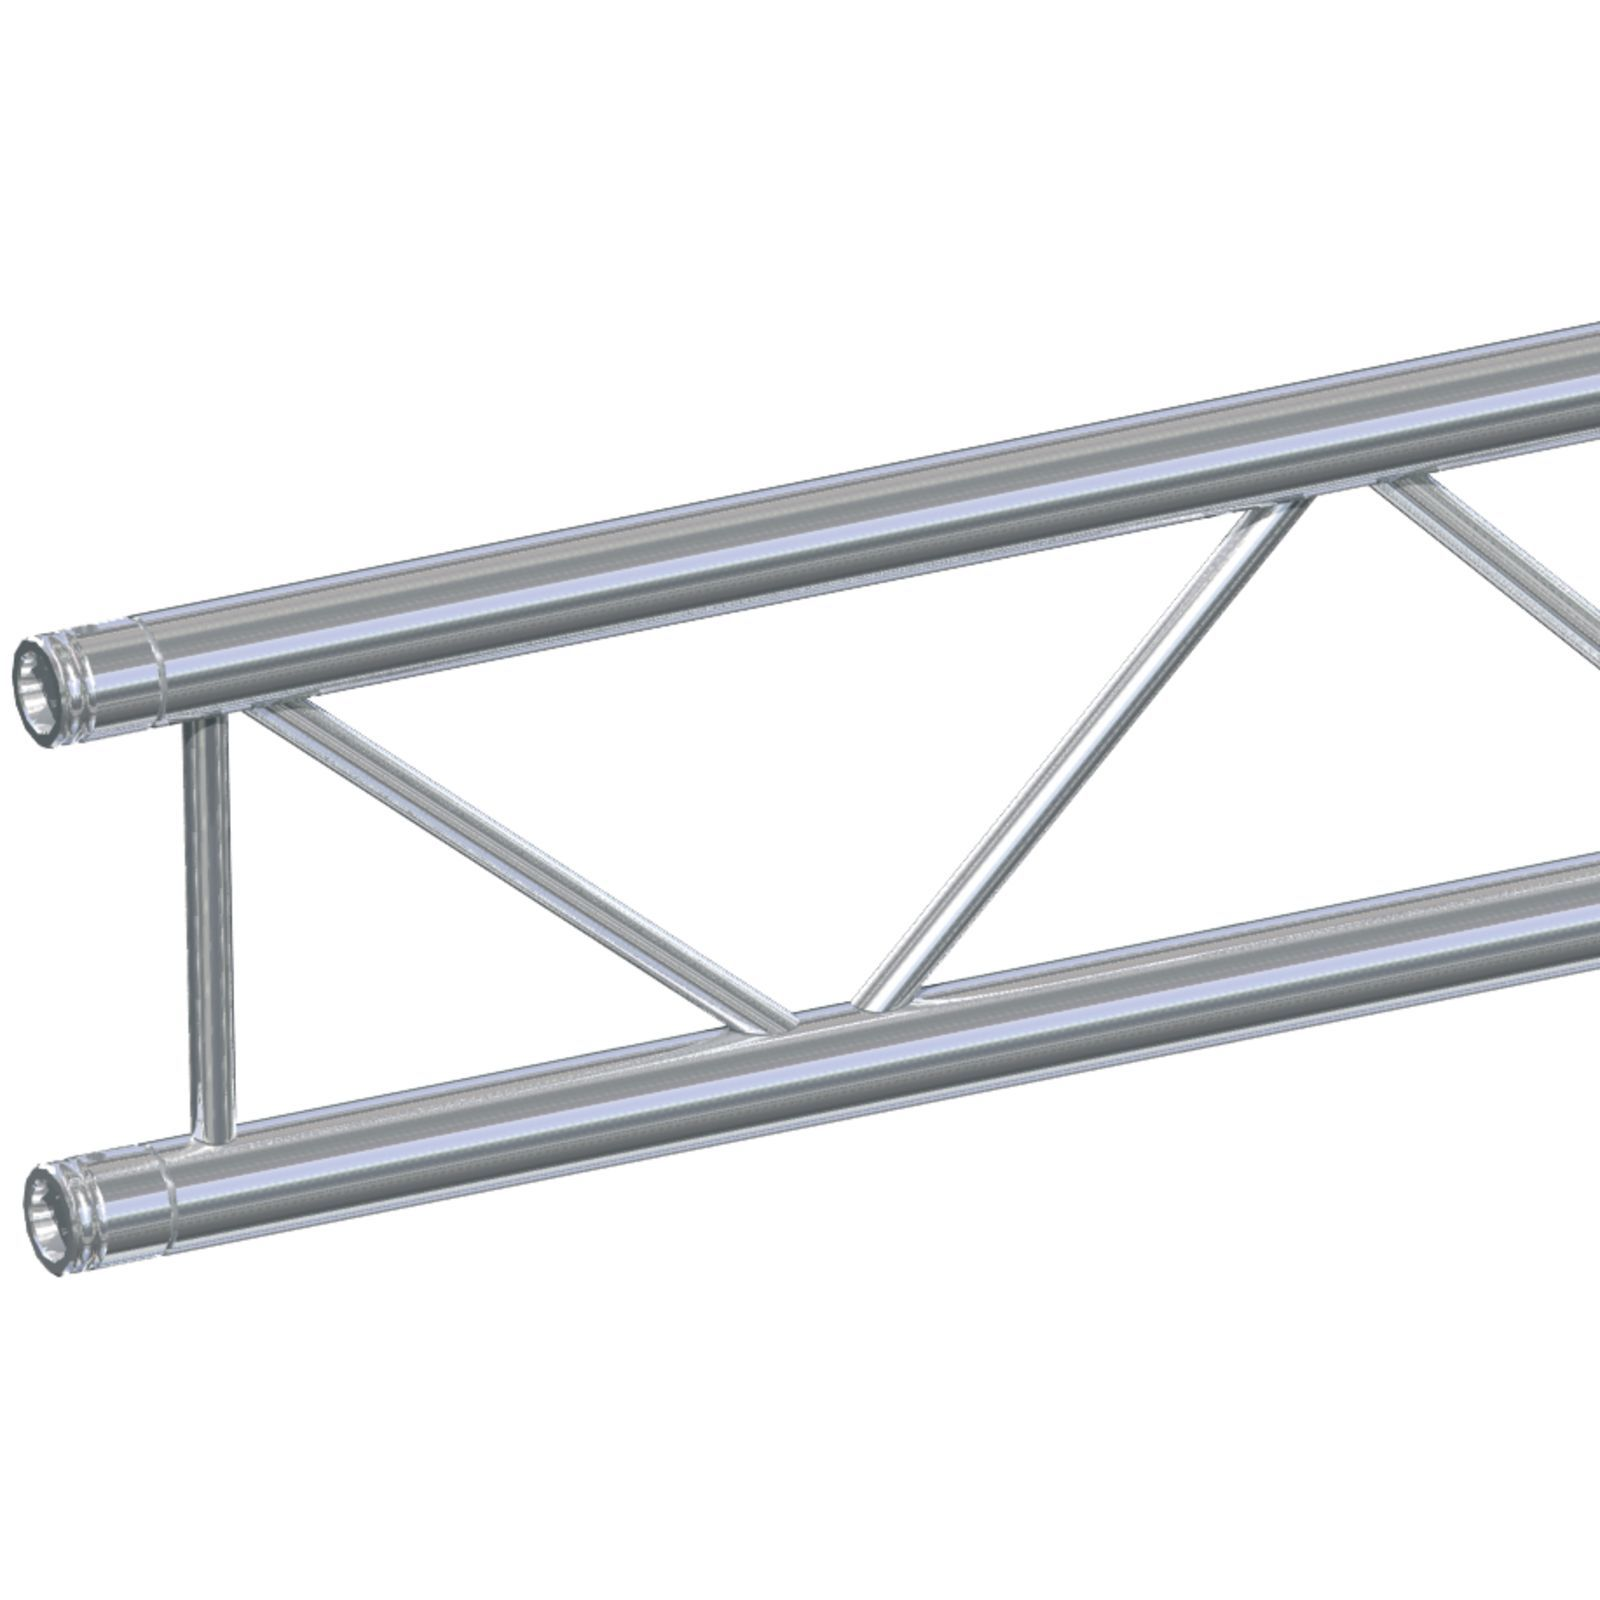 Global Truss F32 500cm Truss 2-Point, TÜV-Certified Produktbillede